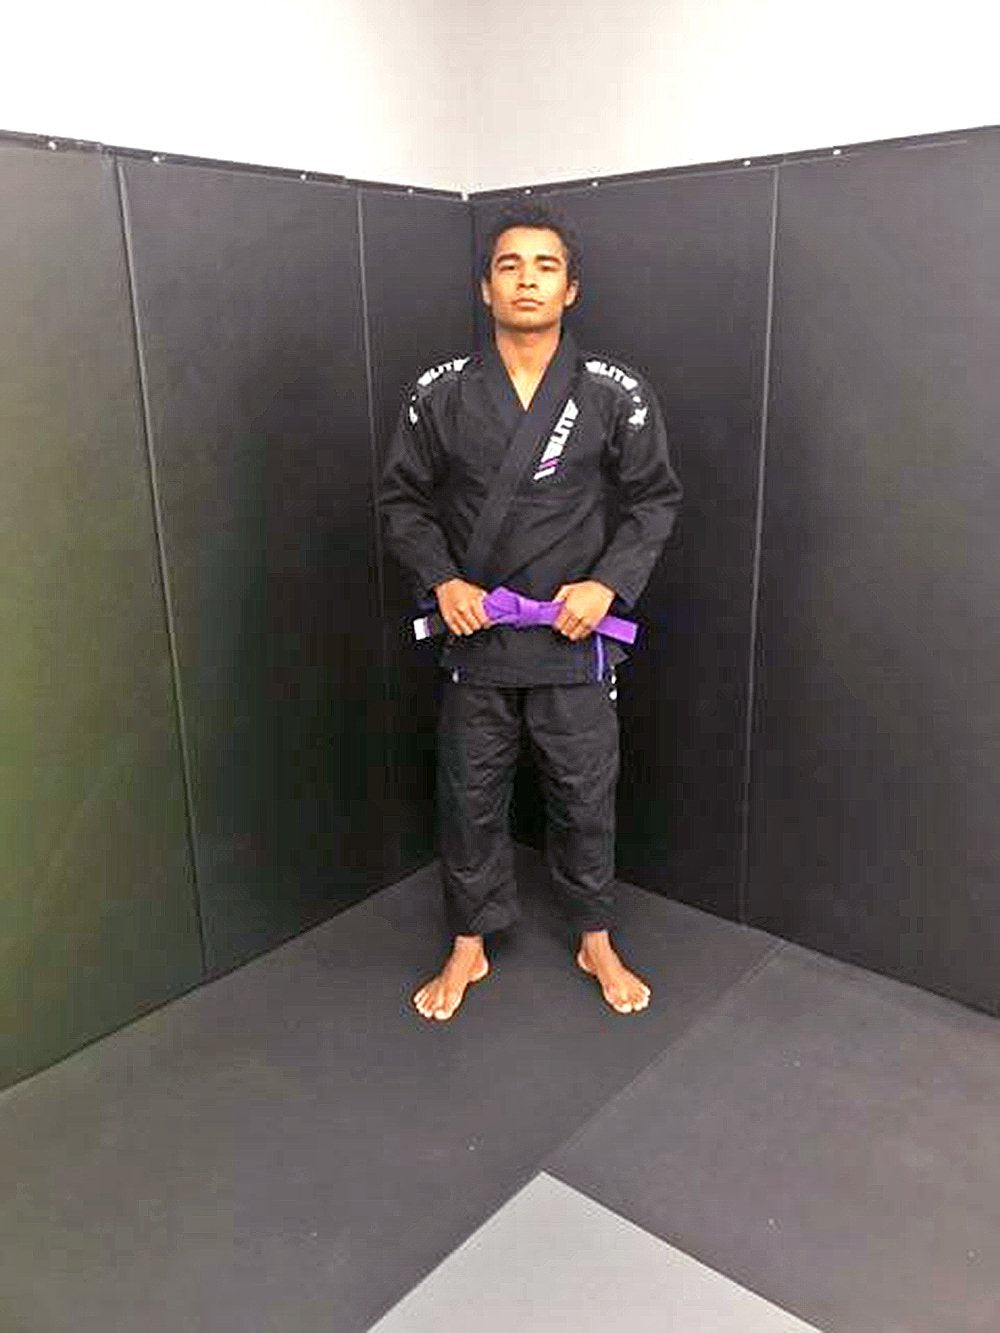 Elite Sports Team Elite Bjj Fighter Johnif de Oliveira Rocha  Image6